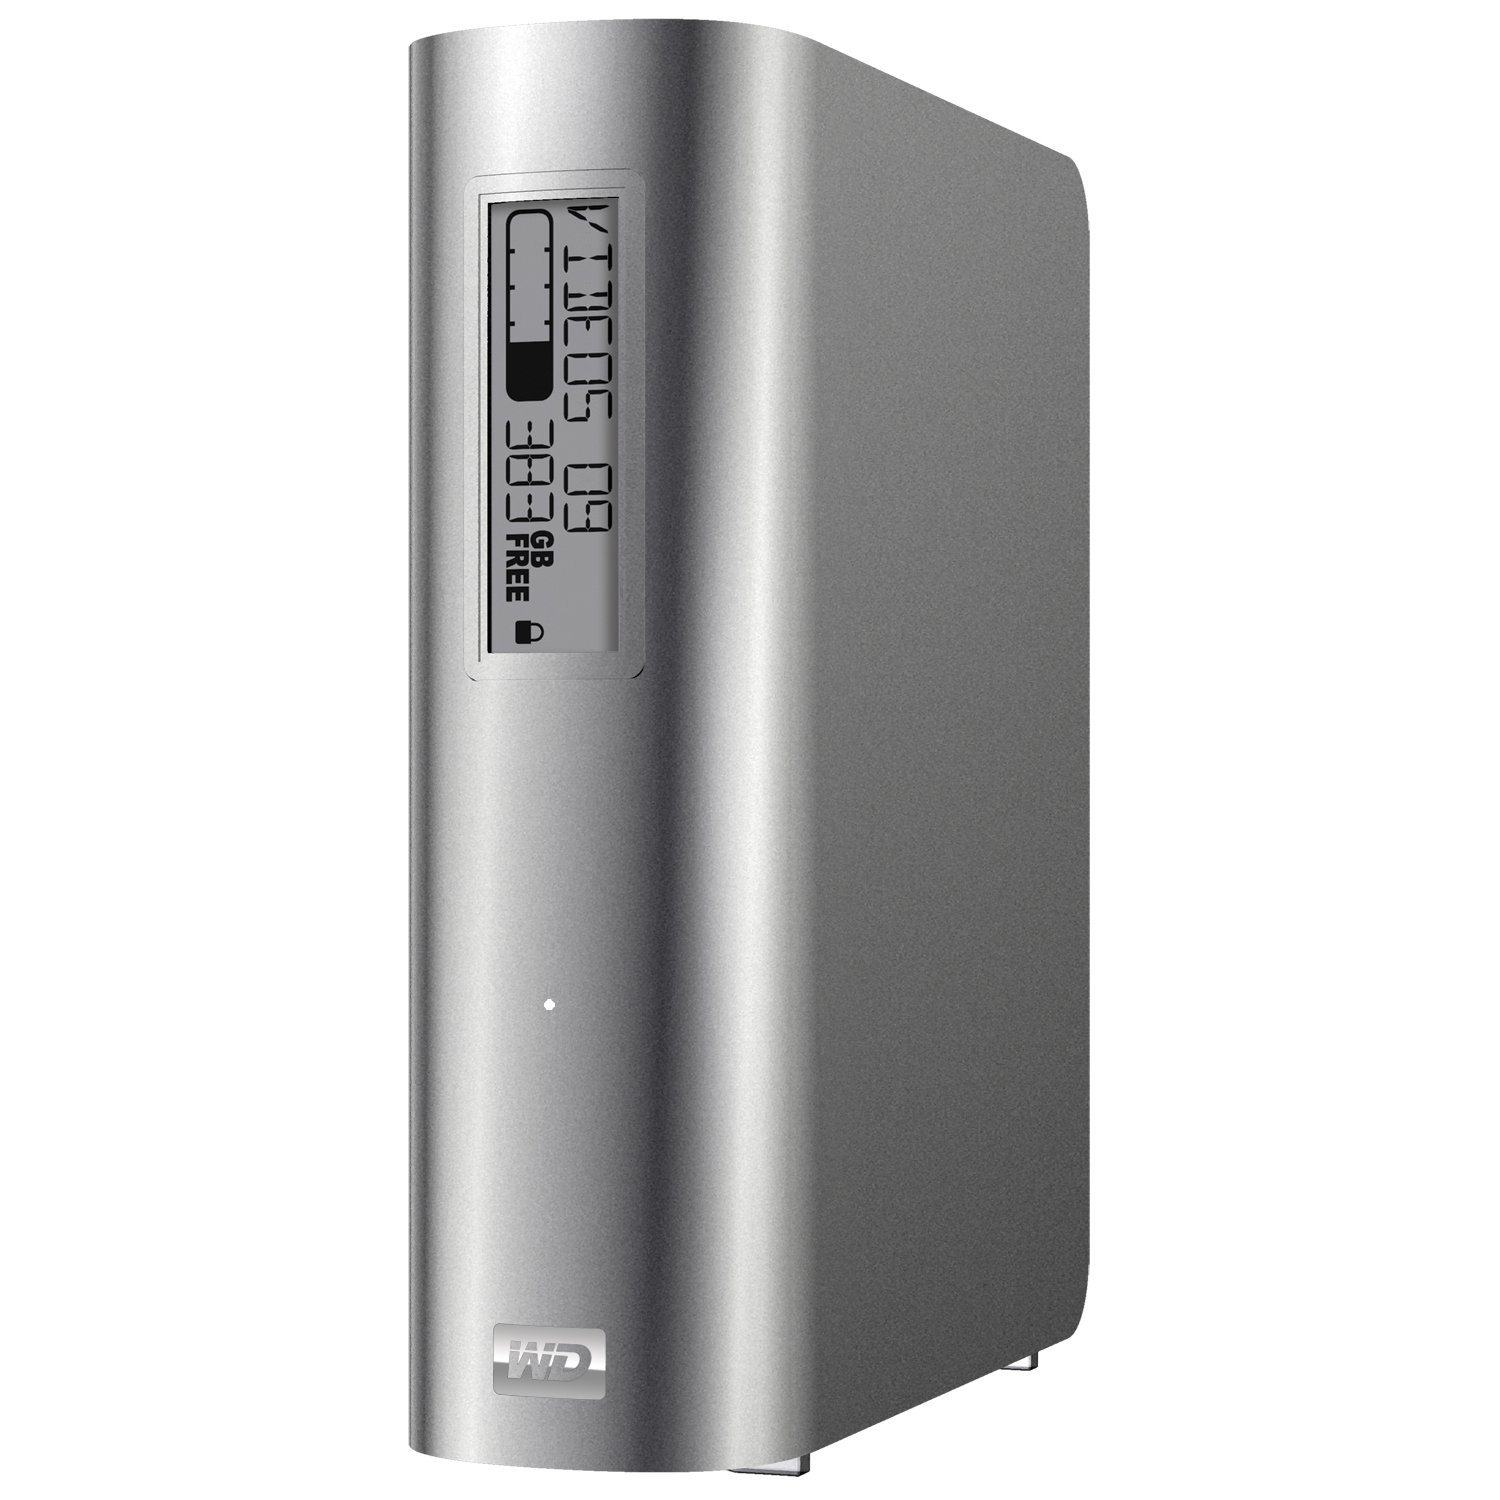 Amazon.com: WD My Book Studio 1 TB USB 2.0/FireWire 800/400, Desktop ...